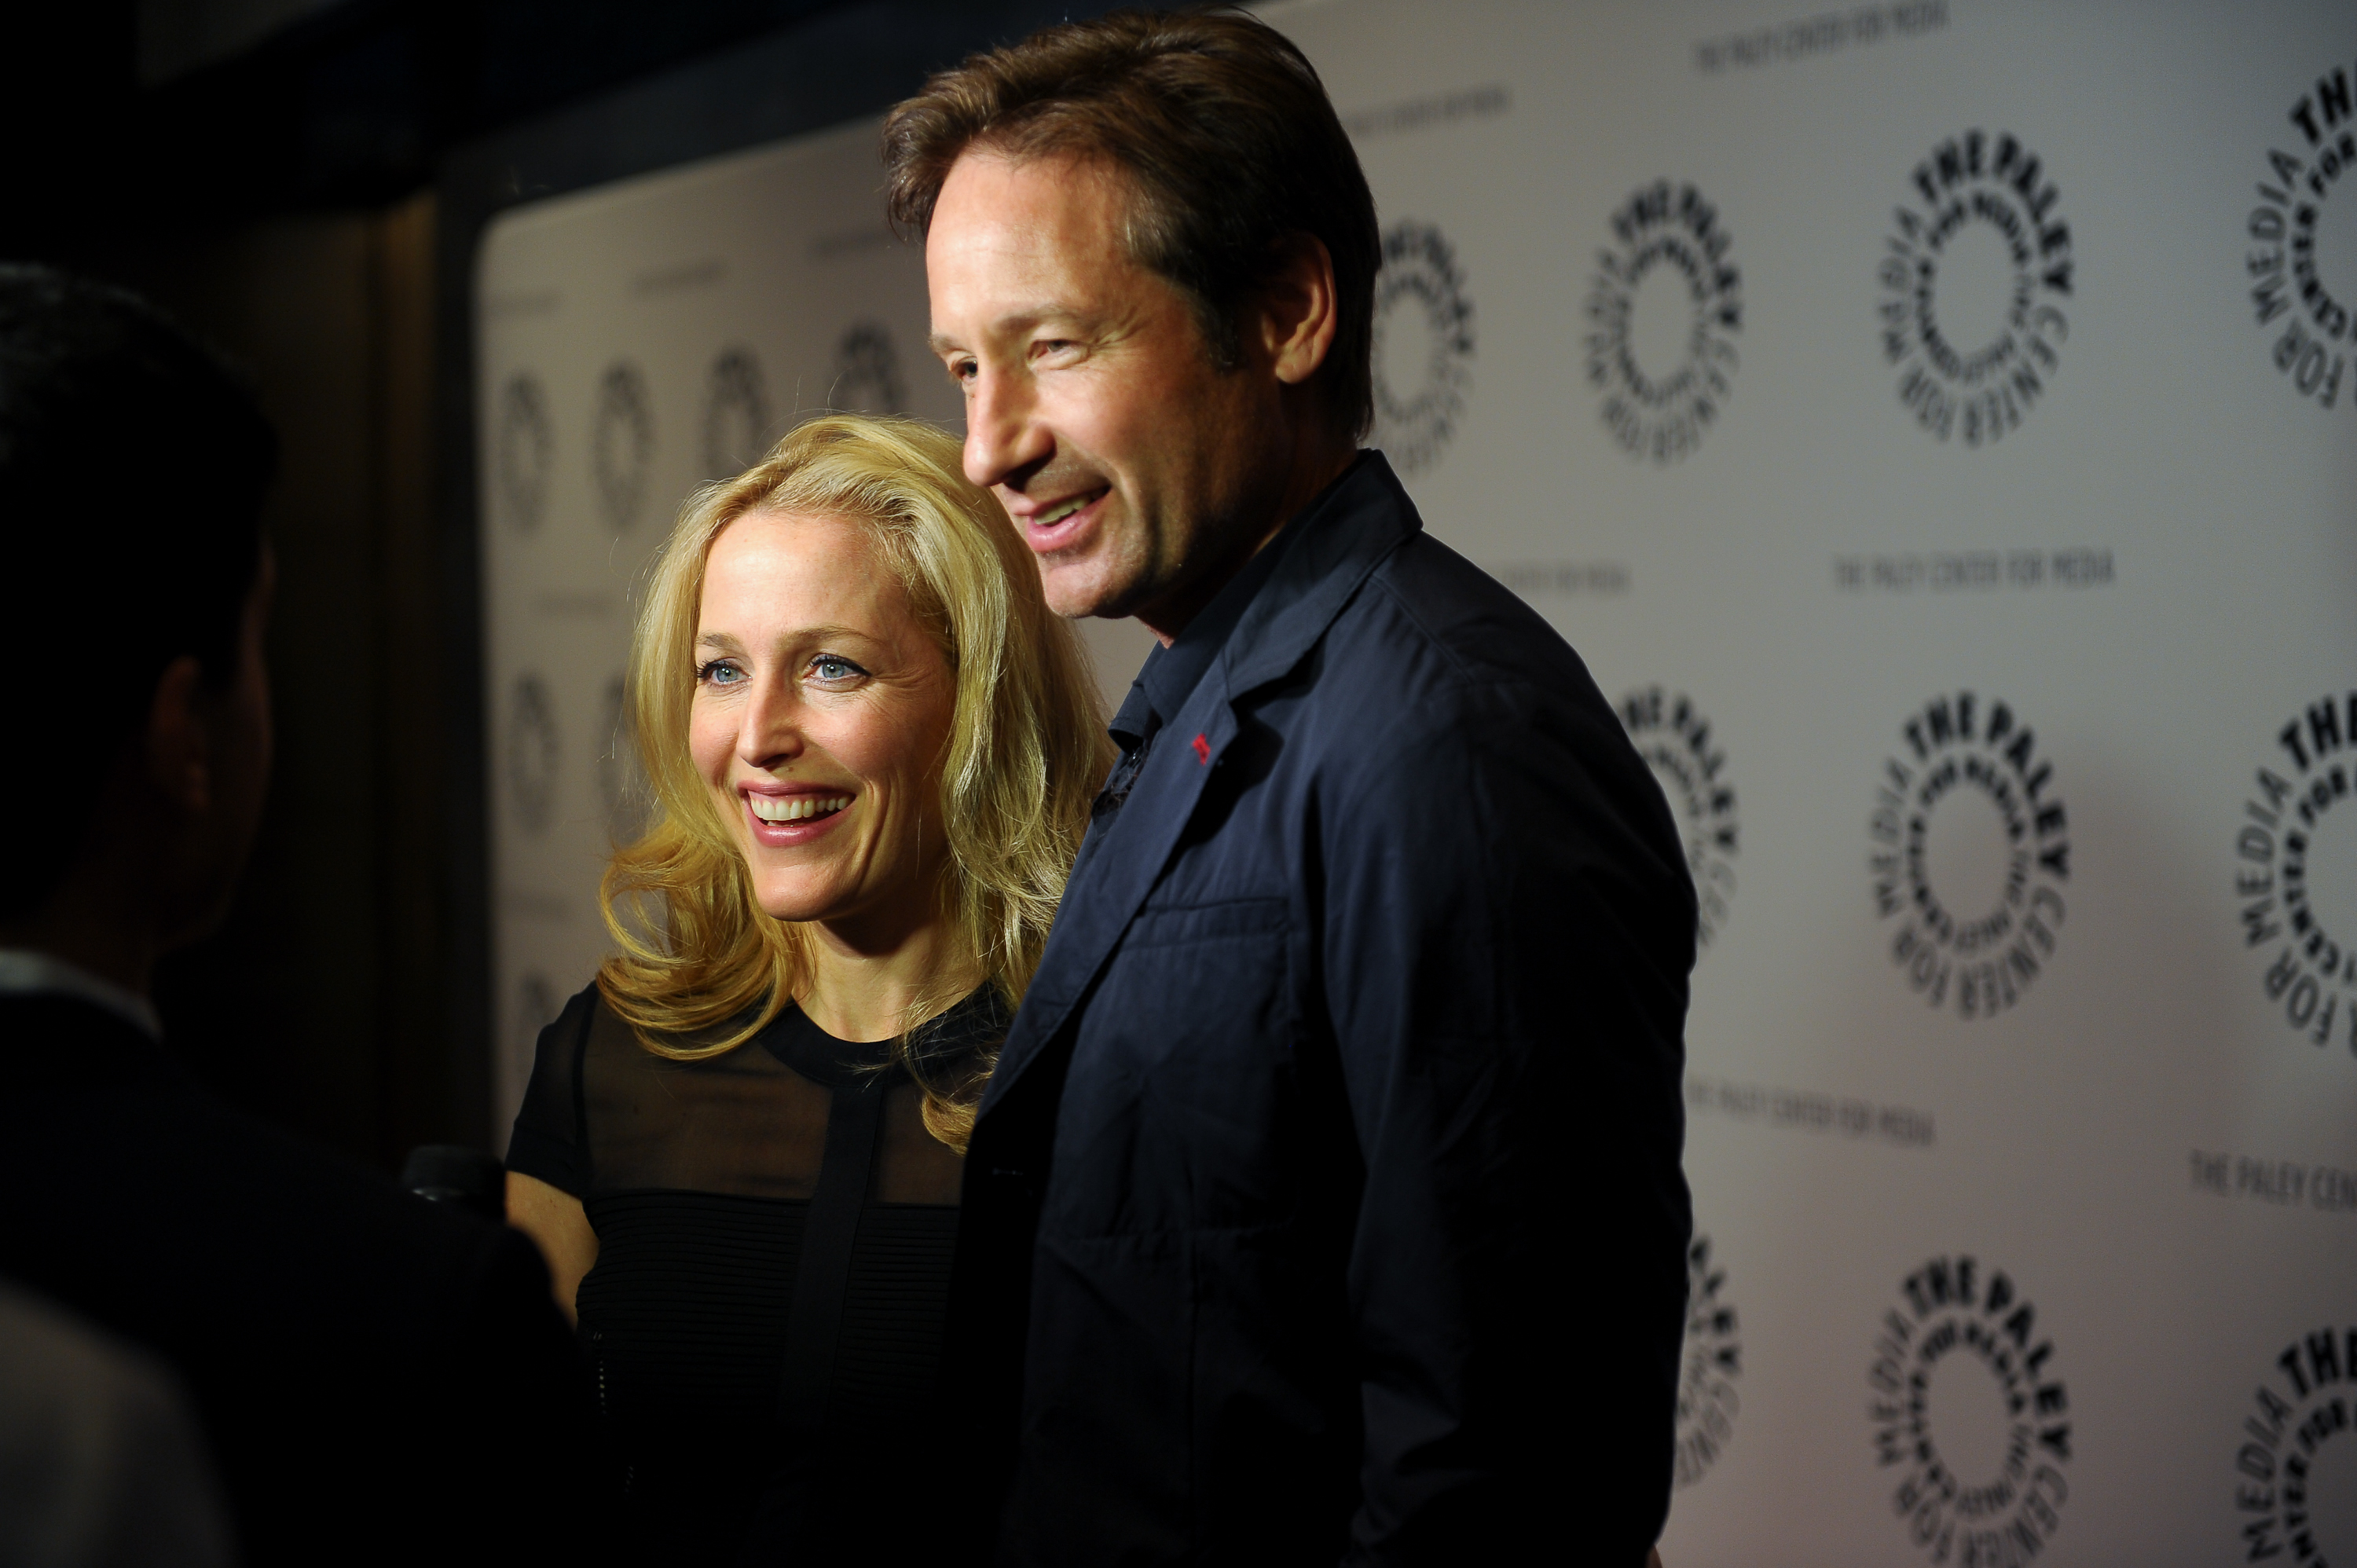 From Left: Gillian Anderson and David Duchovny attend The Truth Is Here: David Duchovny And Gillian Anderson On  The X-Files  at The Paley Center for Media on Oct. 12, 2013 in New York City.